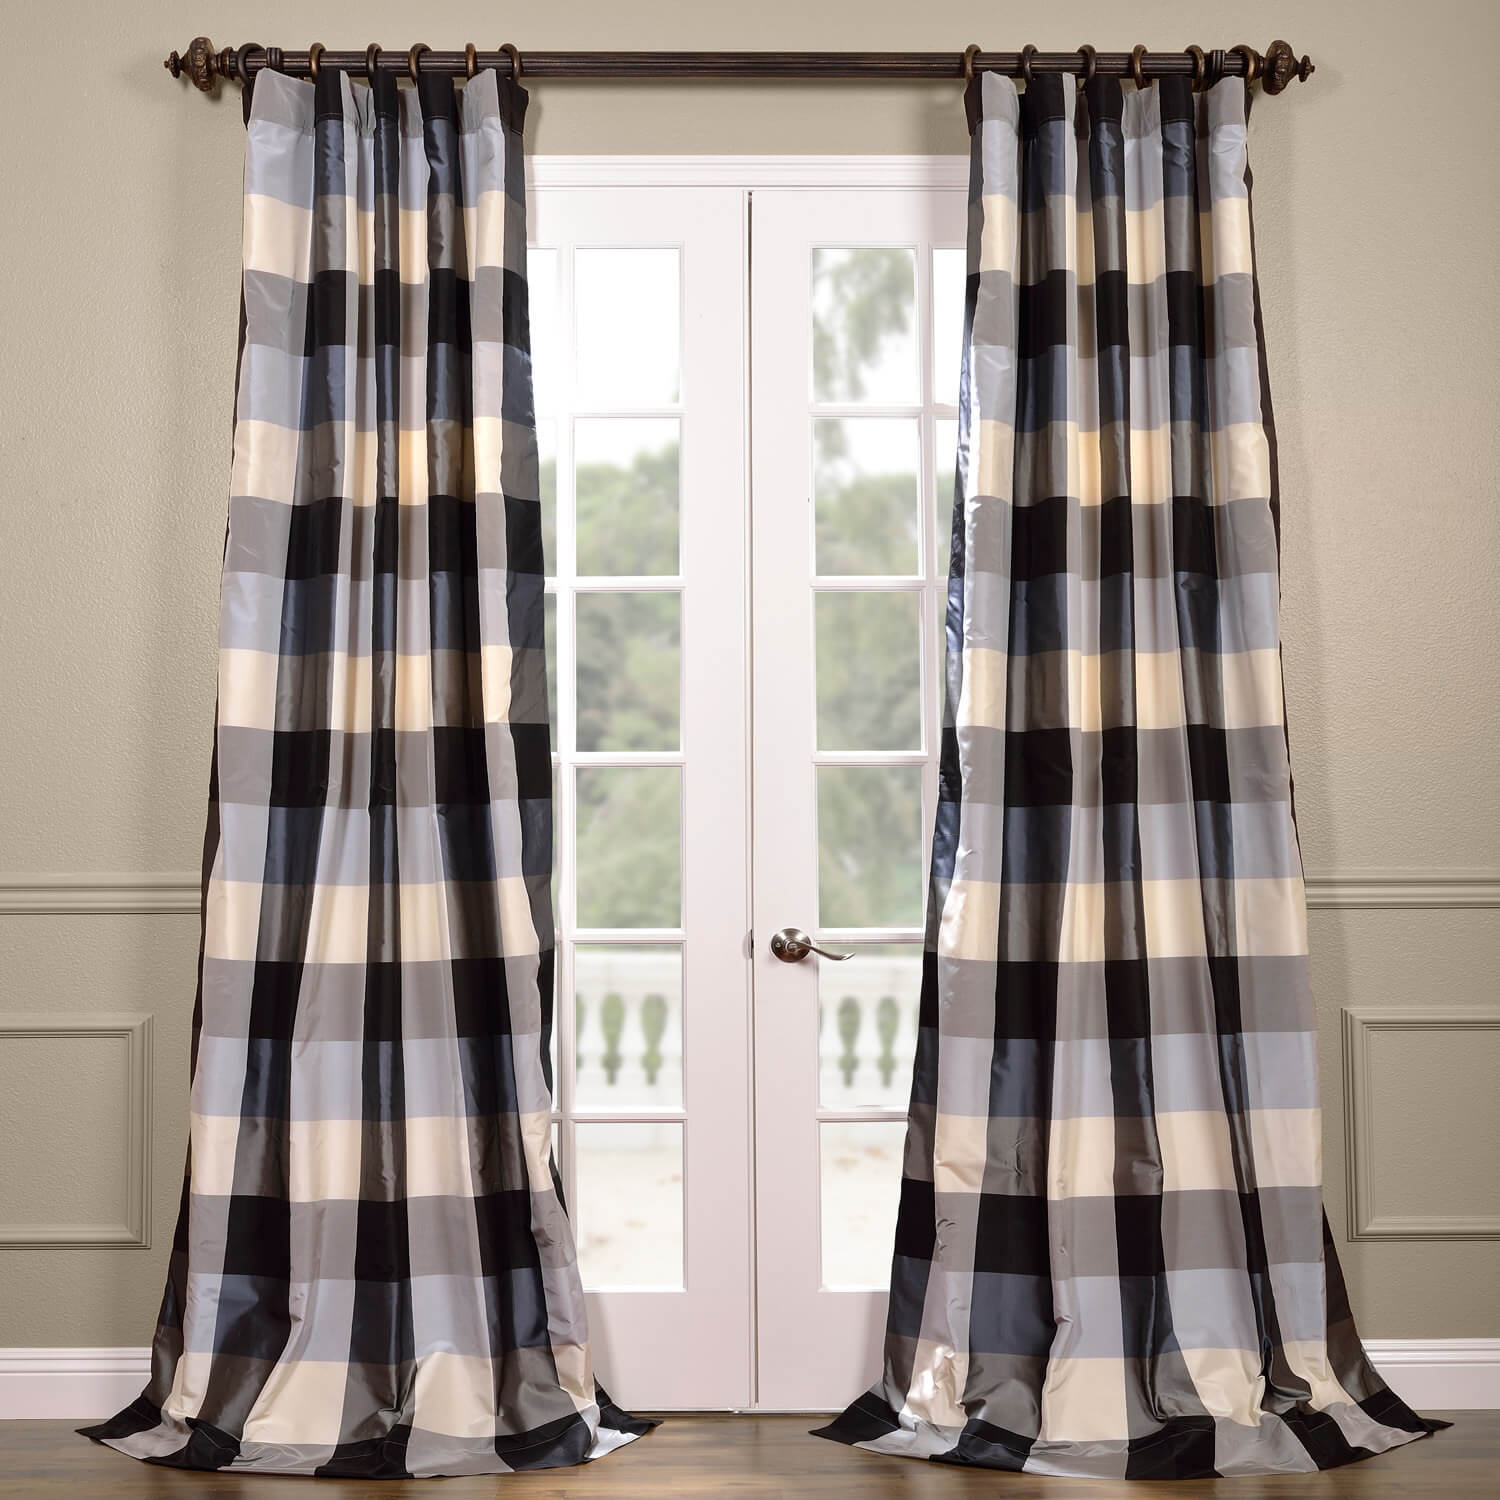 curtain curtains about designs bedrooms ideas design lovely tags fabulous of bedroom master designer alluring